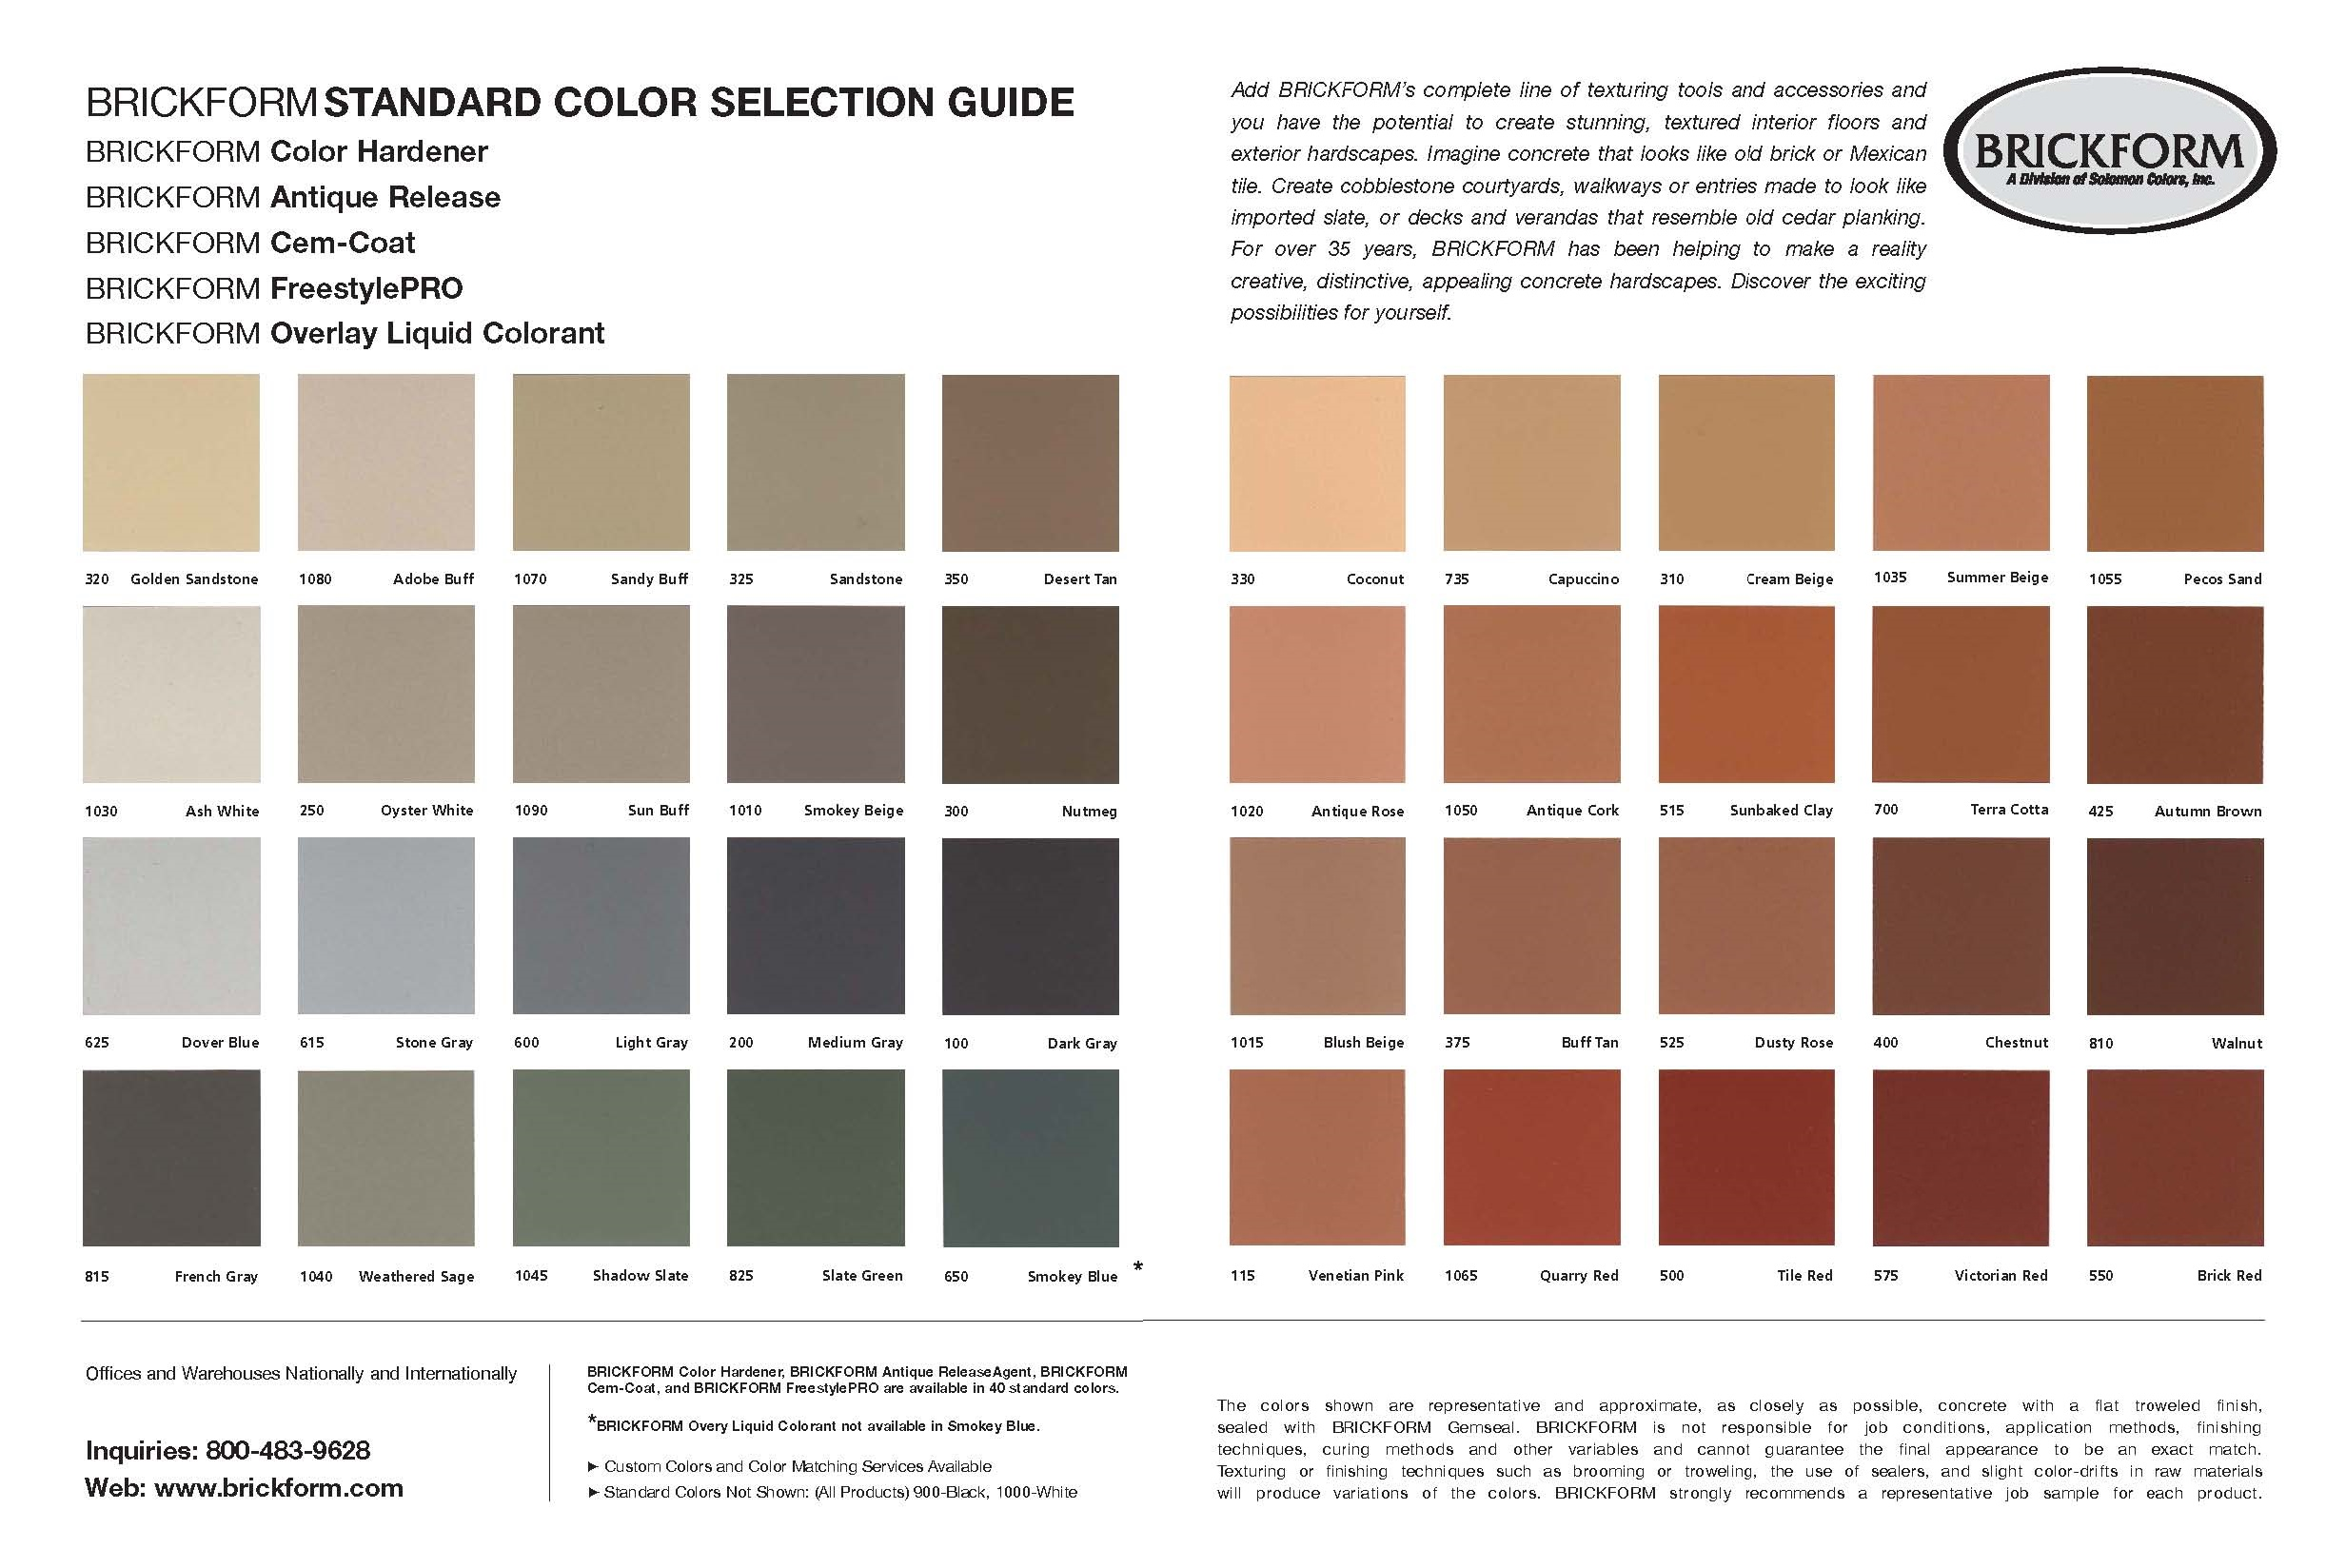 Product information axiom construction bc color hard nvjuhfo Images